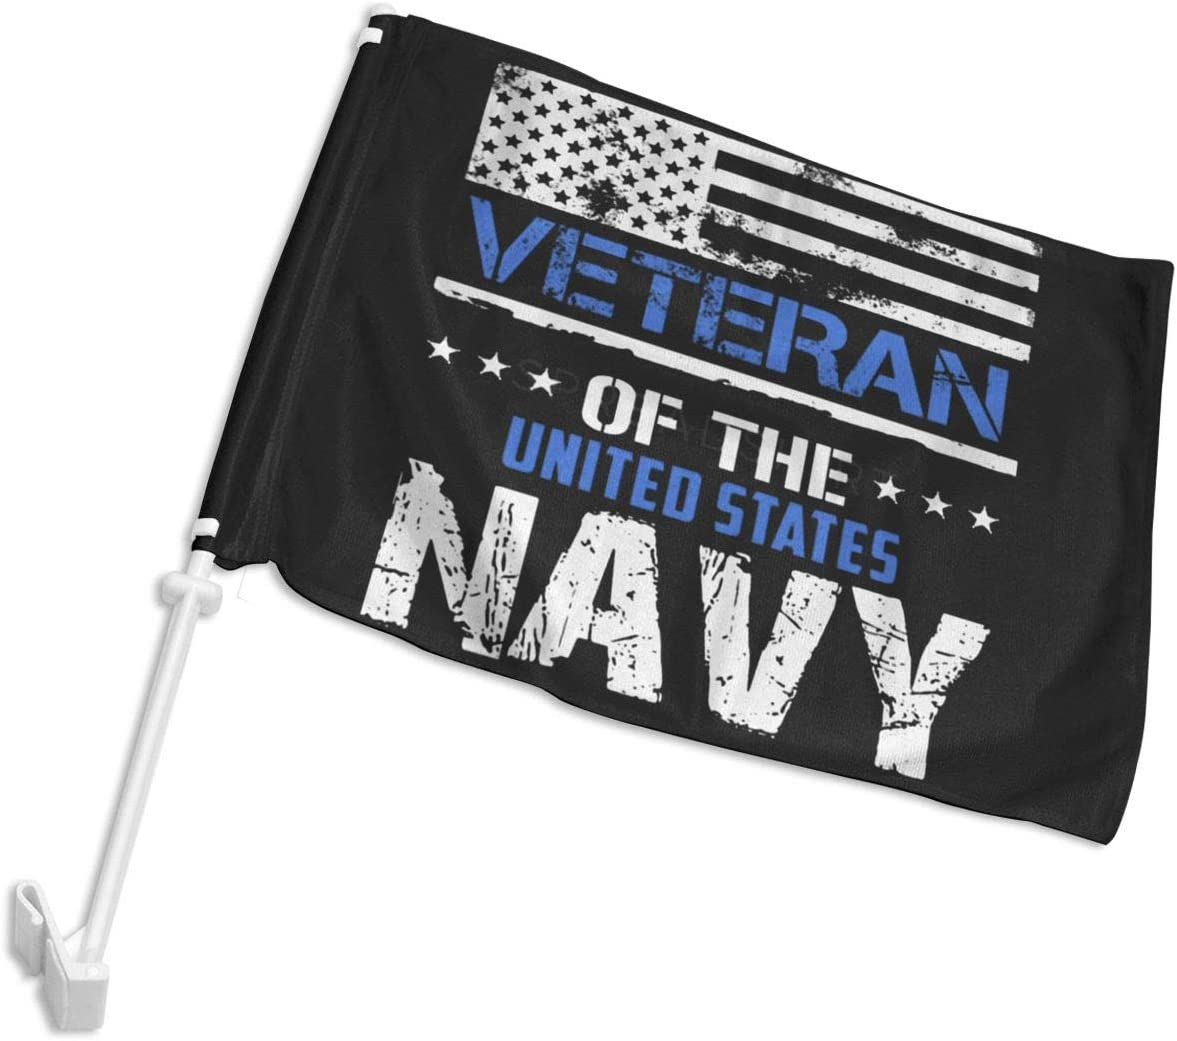 "POYOMUK US Navy Veteran Car Flag Auto Window Banner - Double Sided 12""X18"" Polyester Garden Flag Banner Decorative Flag Garden Outdoor Decor - Without Flagpole"